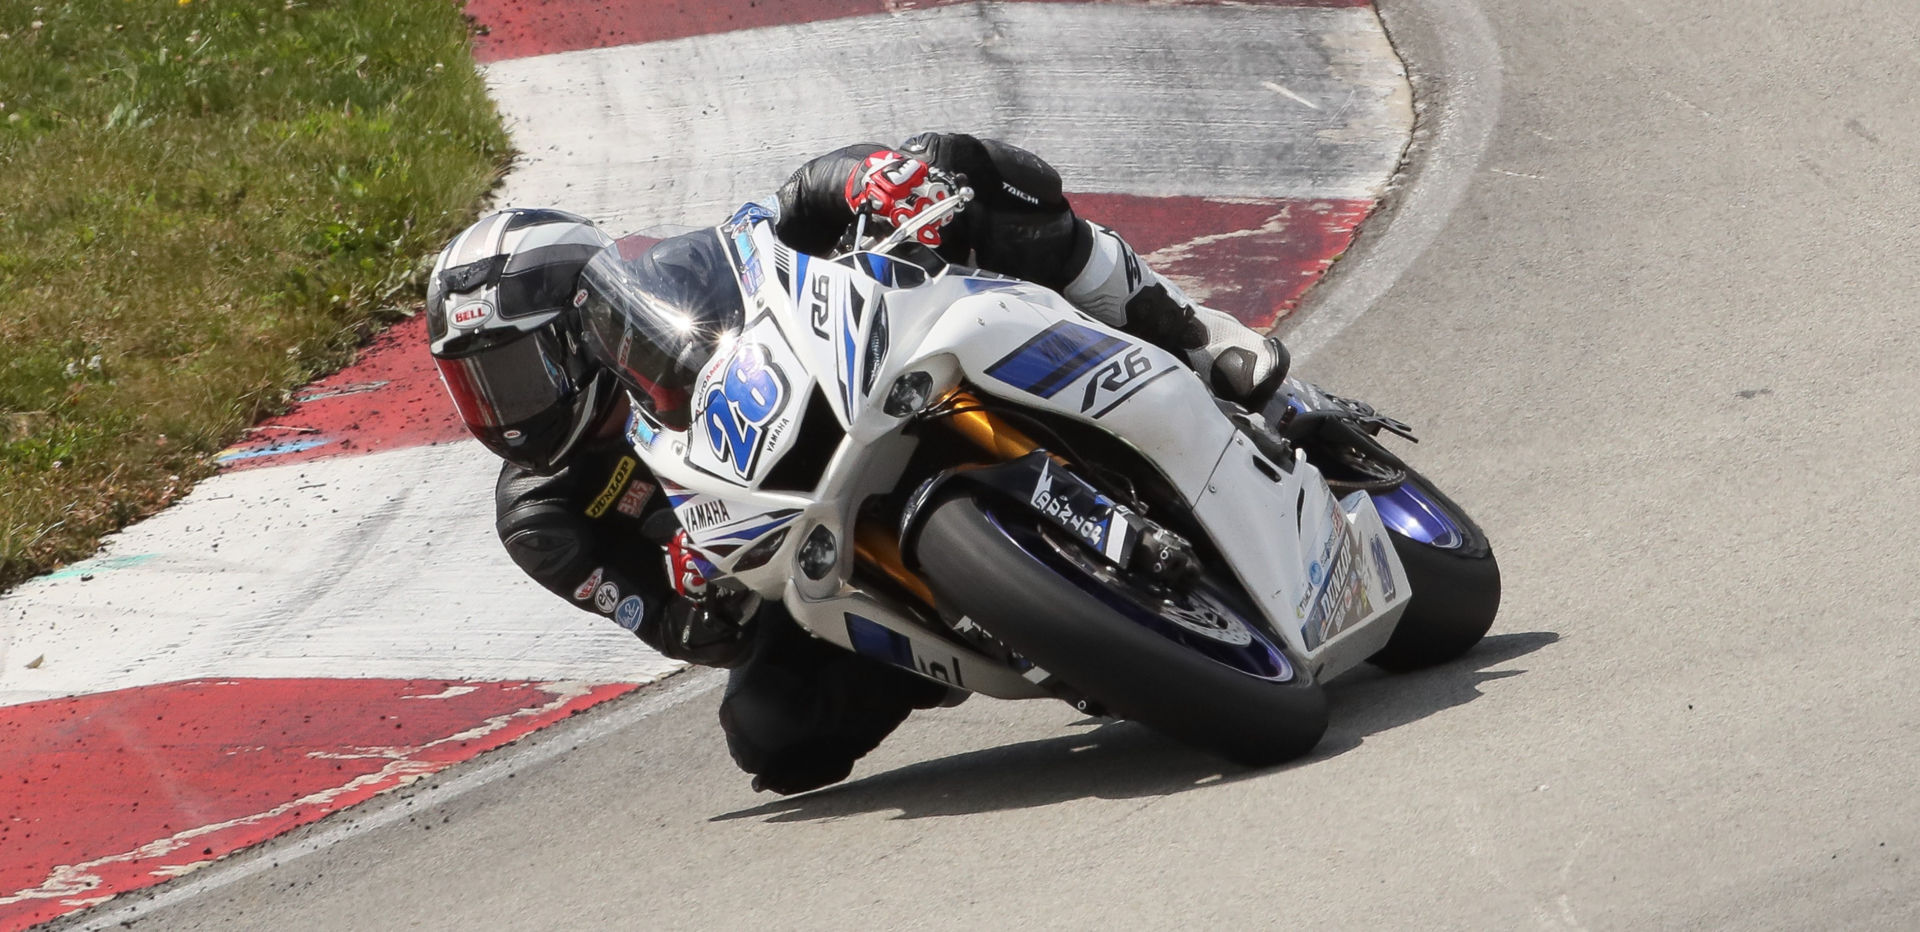 Cory Ventura (28) racing in the MotoAmerica Supersport class at Pittsburgh International Race Complex in 2019. Photo by Brian J. Nelson.